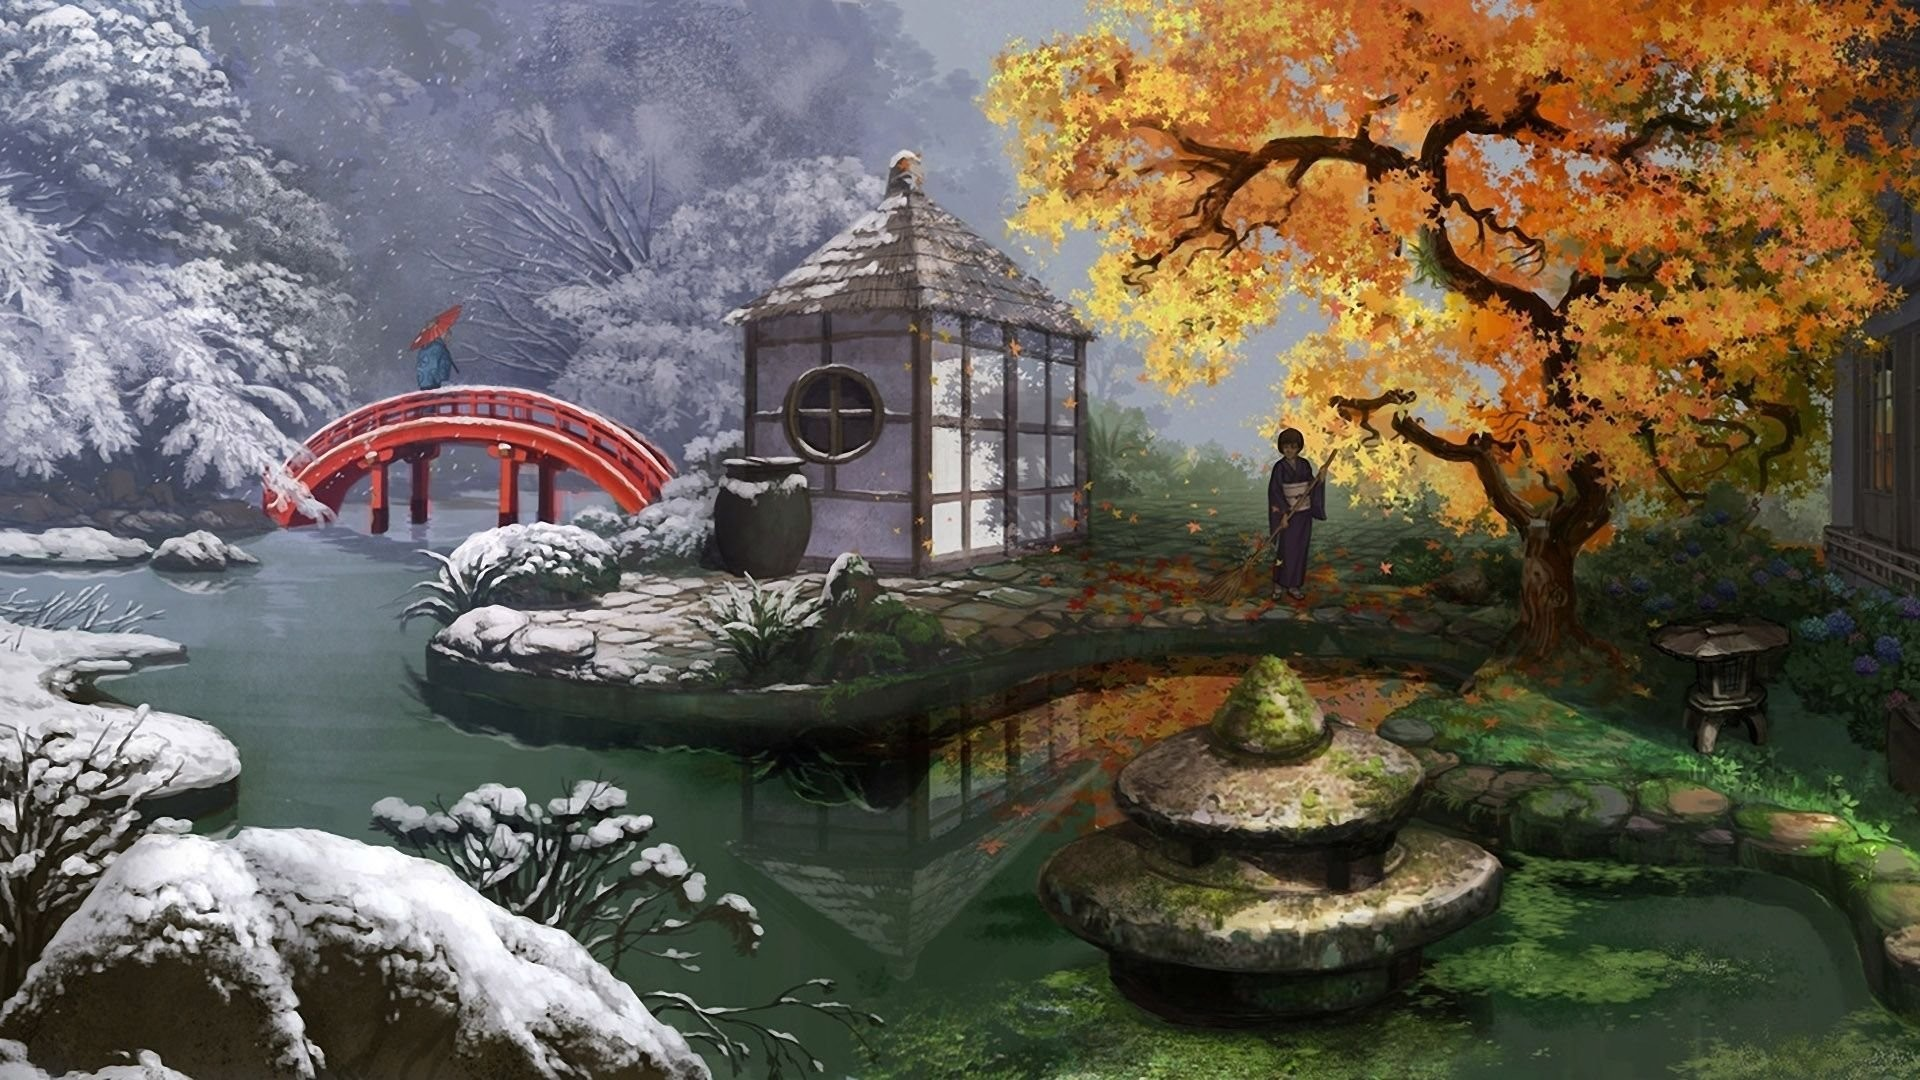 Res: 1920x1080, Japanese Garden Wallpapers 25 - 1920 X 1080